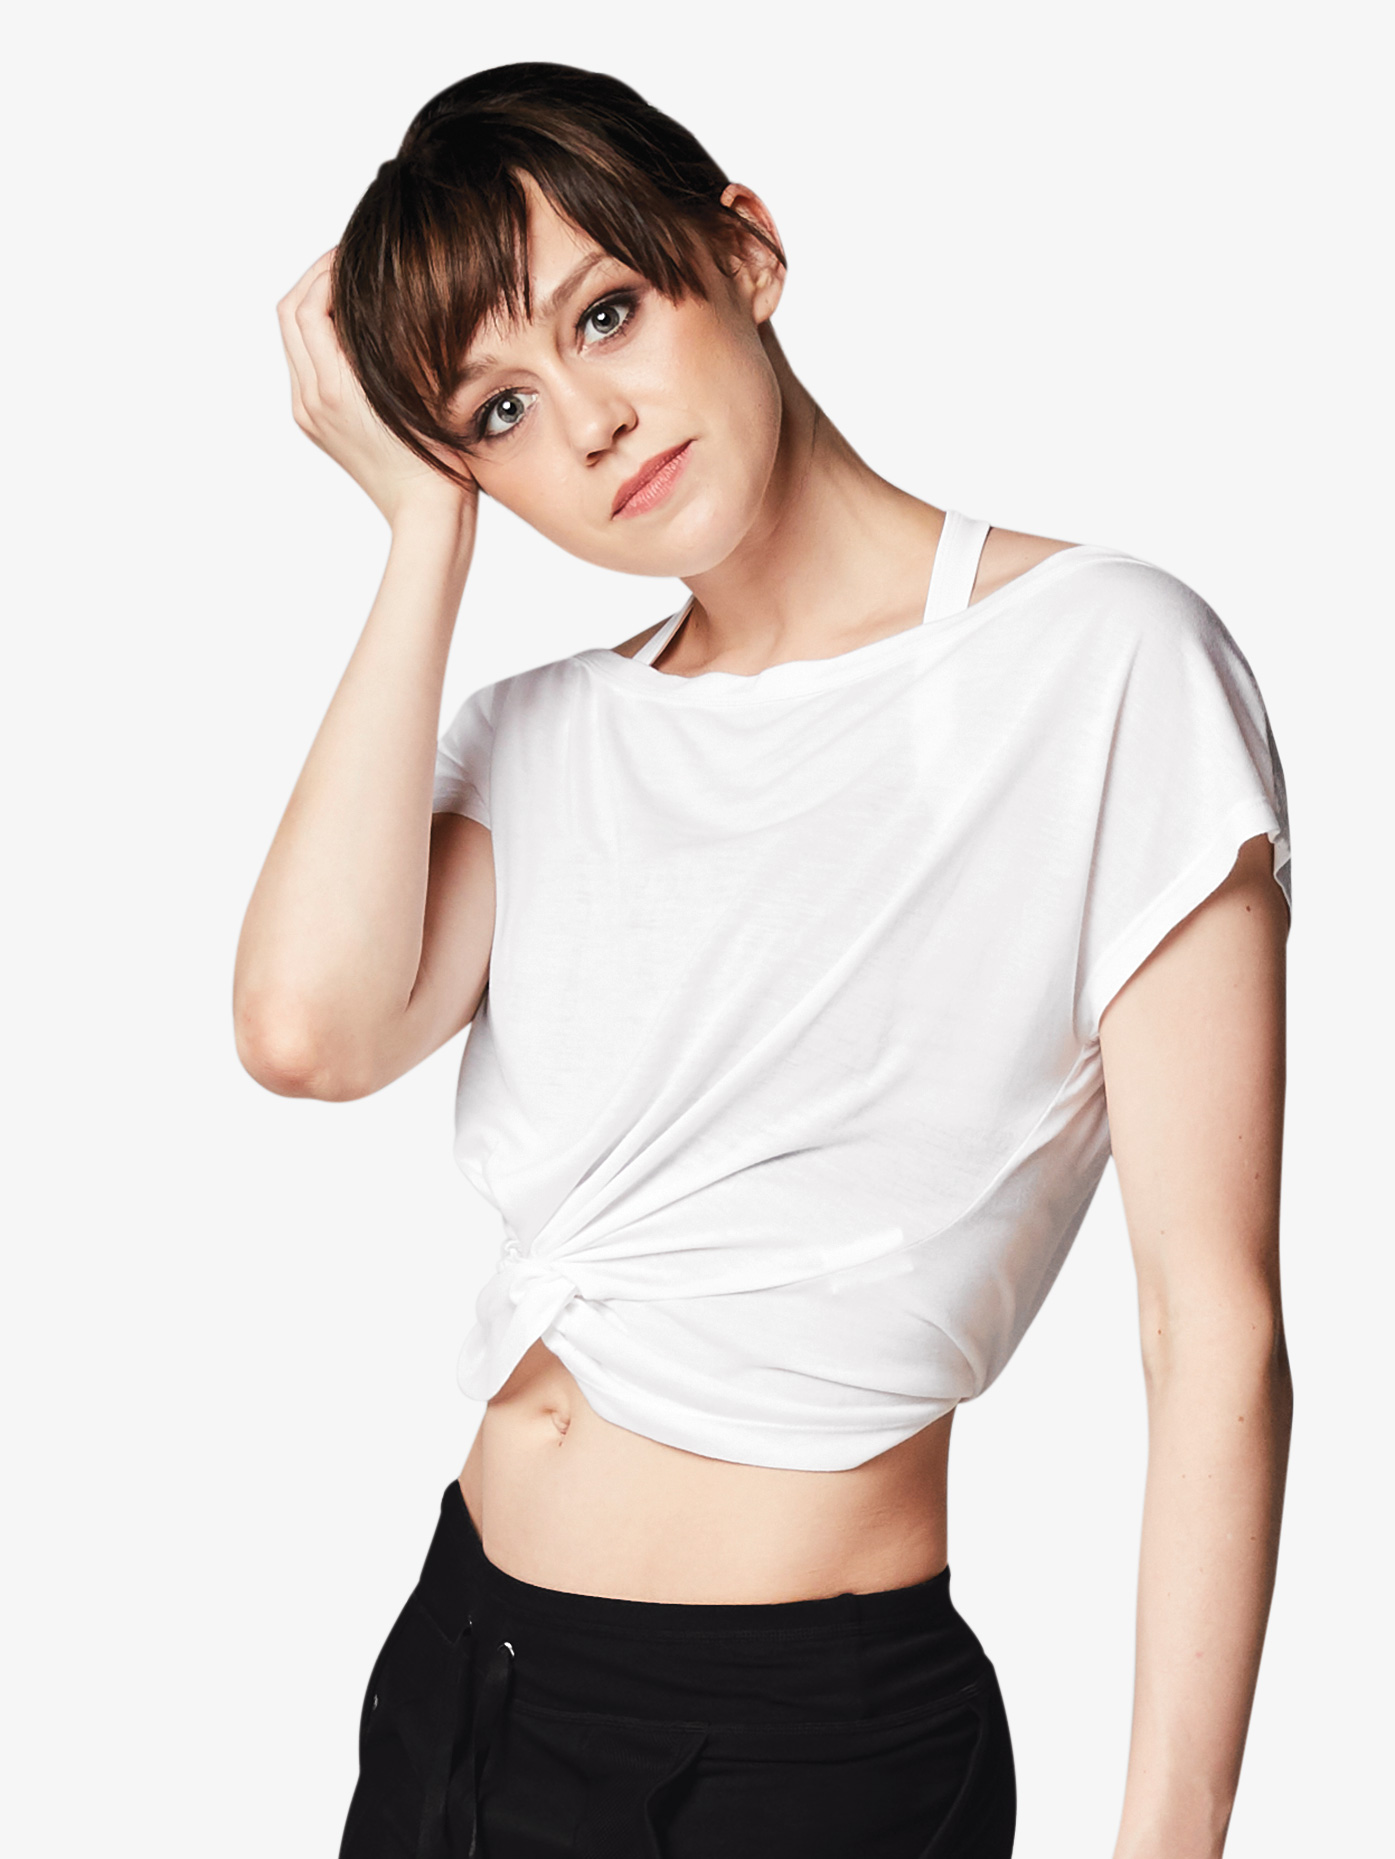 518fddc3743e9 Womens Knotted Front Cap Sleeve Dance Crop Top - Style No FT5060. Loading  zoom